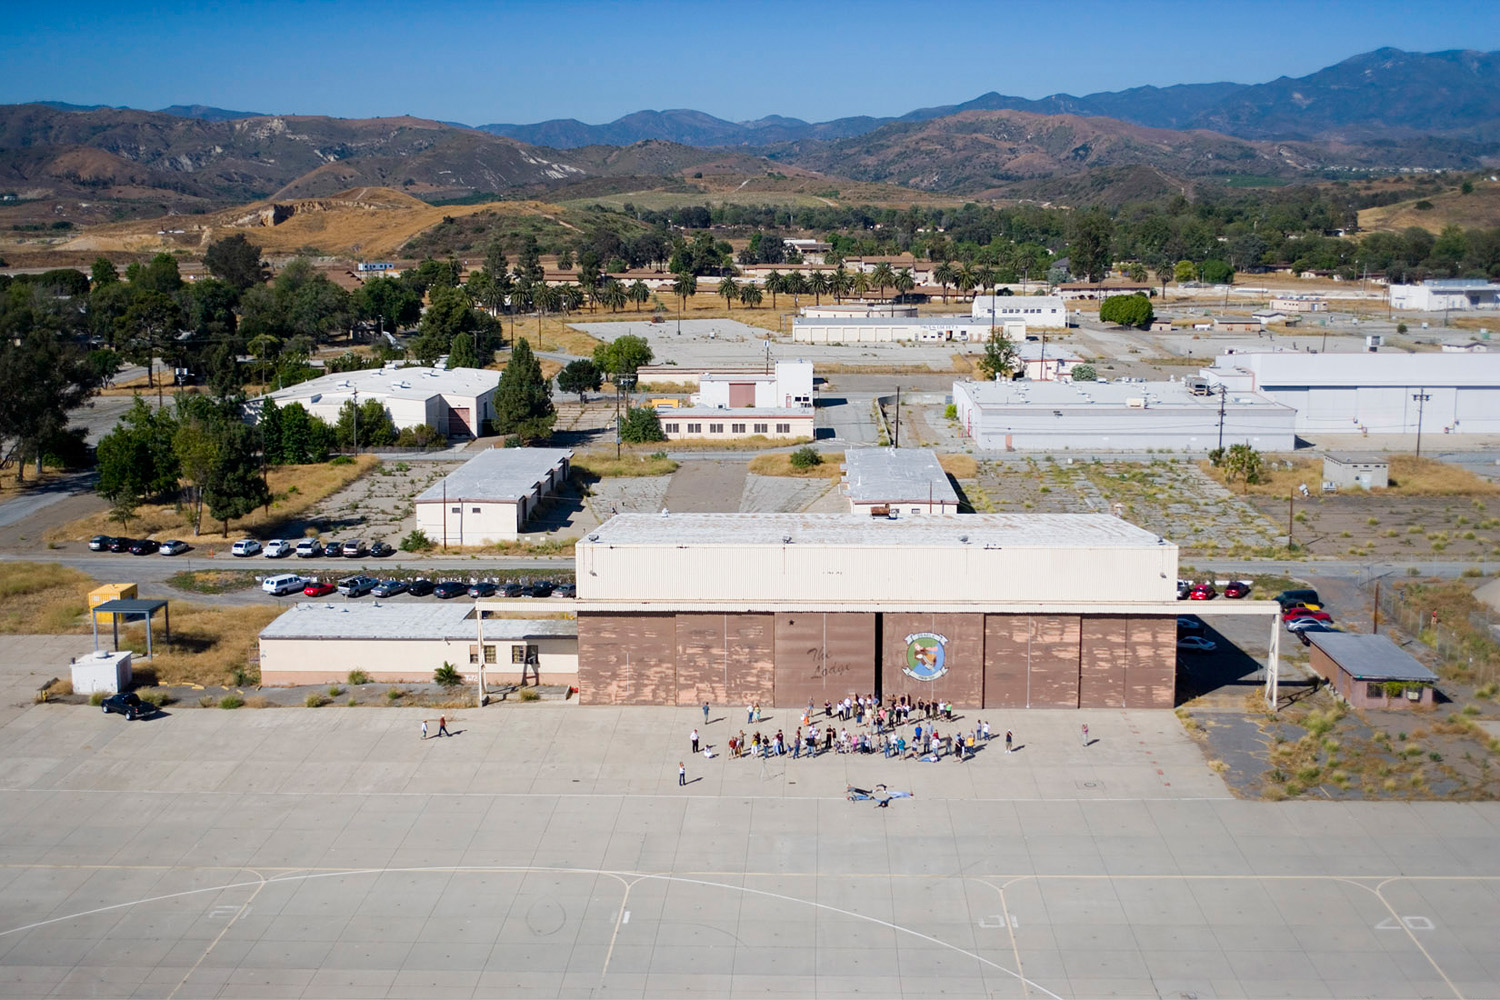 High above the F-18 hanger used to make the Great Picture with a portion of the El Toro Marine base in the background.